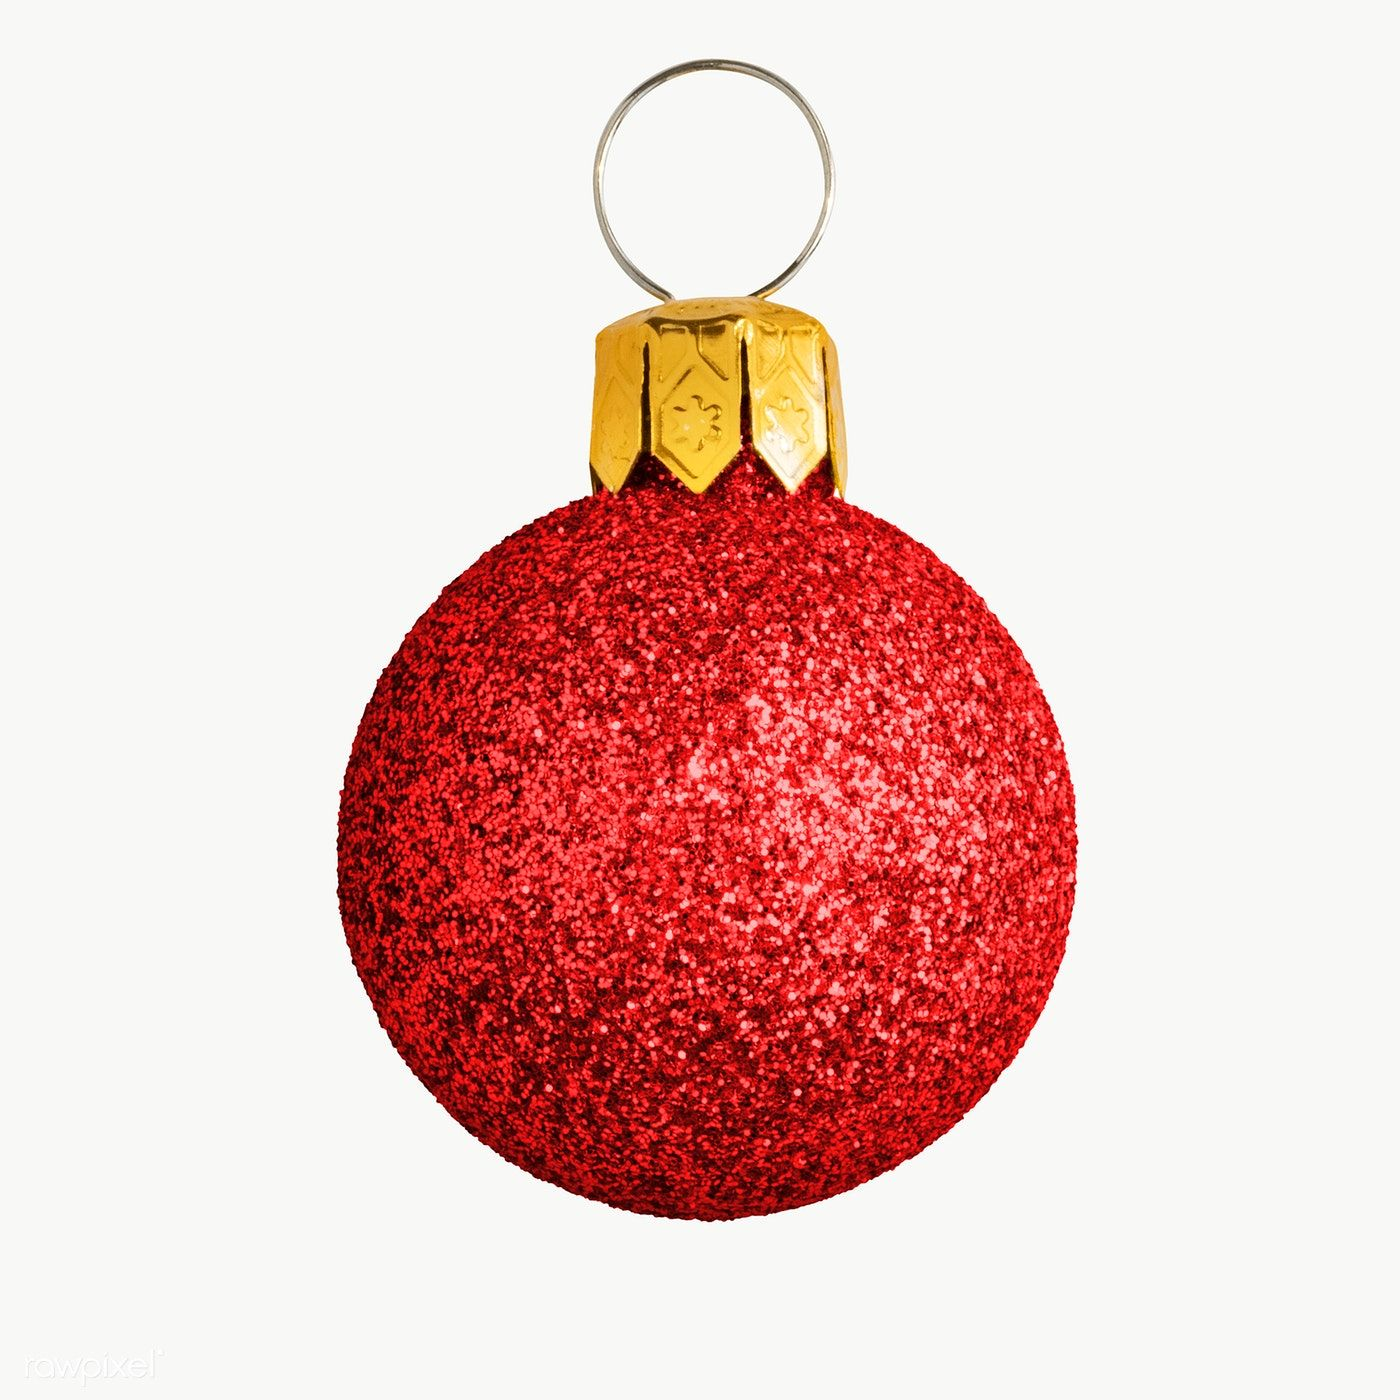 A Glitter Red Ball Christmas Ornament On Transparent Premium Image By Rawpixel Com Jira Christmas Ornaments Christmas Icons Christmas Bulbs